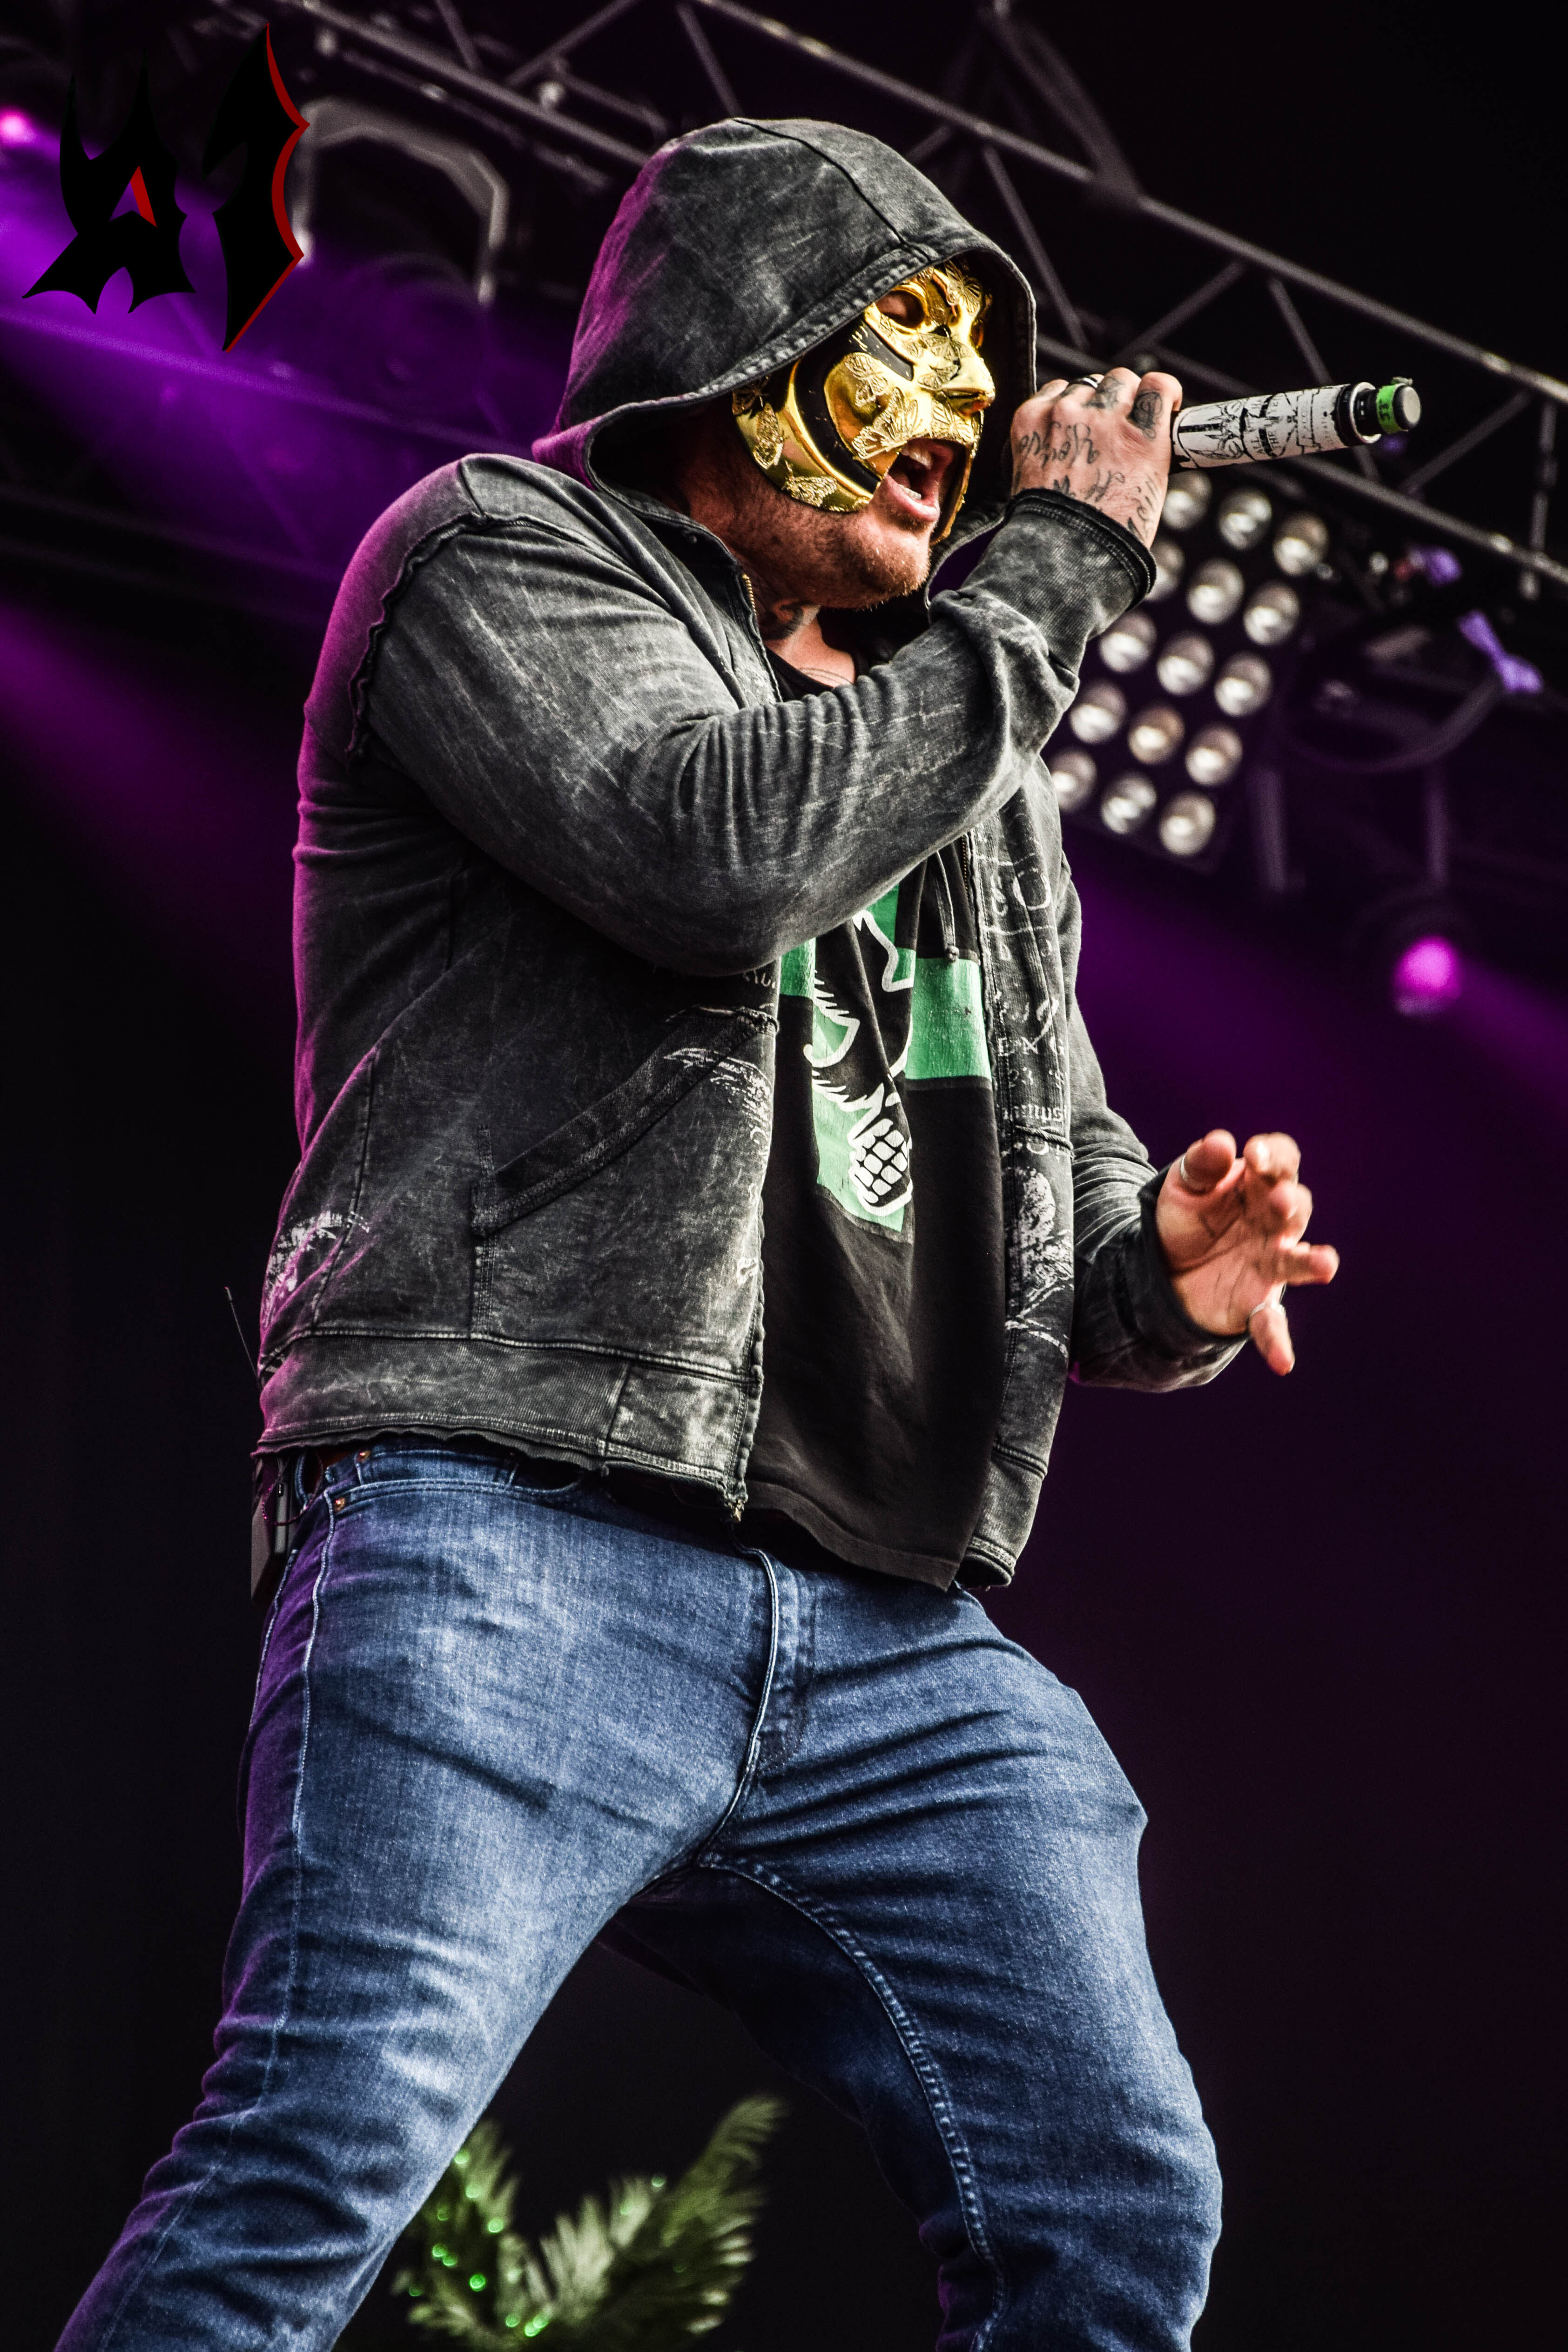 Donwload 2018 – Day 2 - Hollywood Undead 1